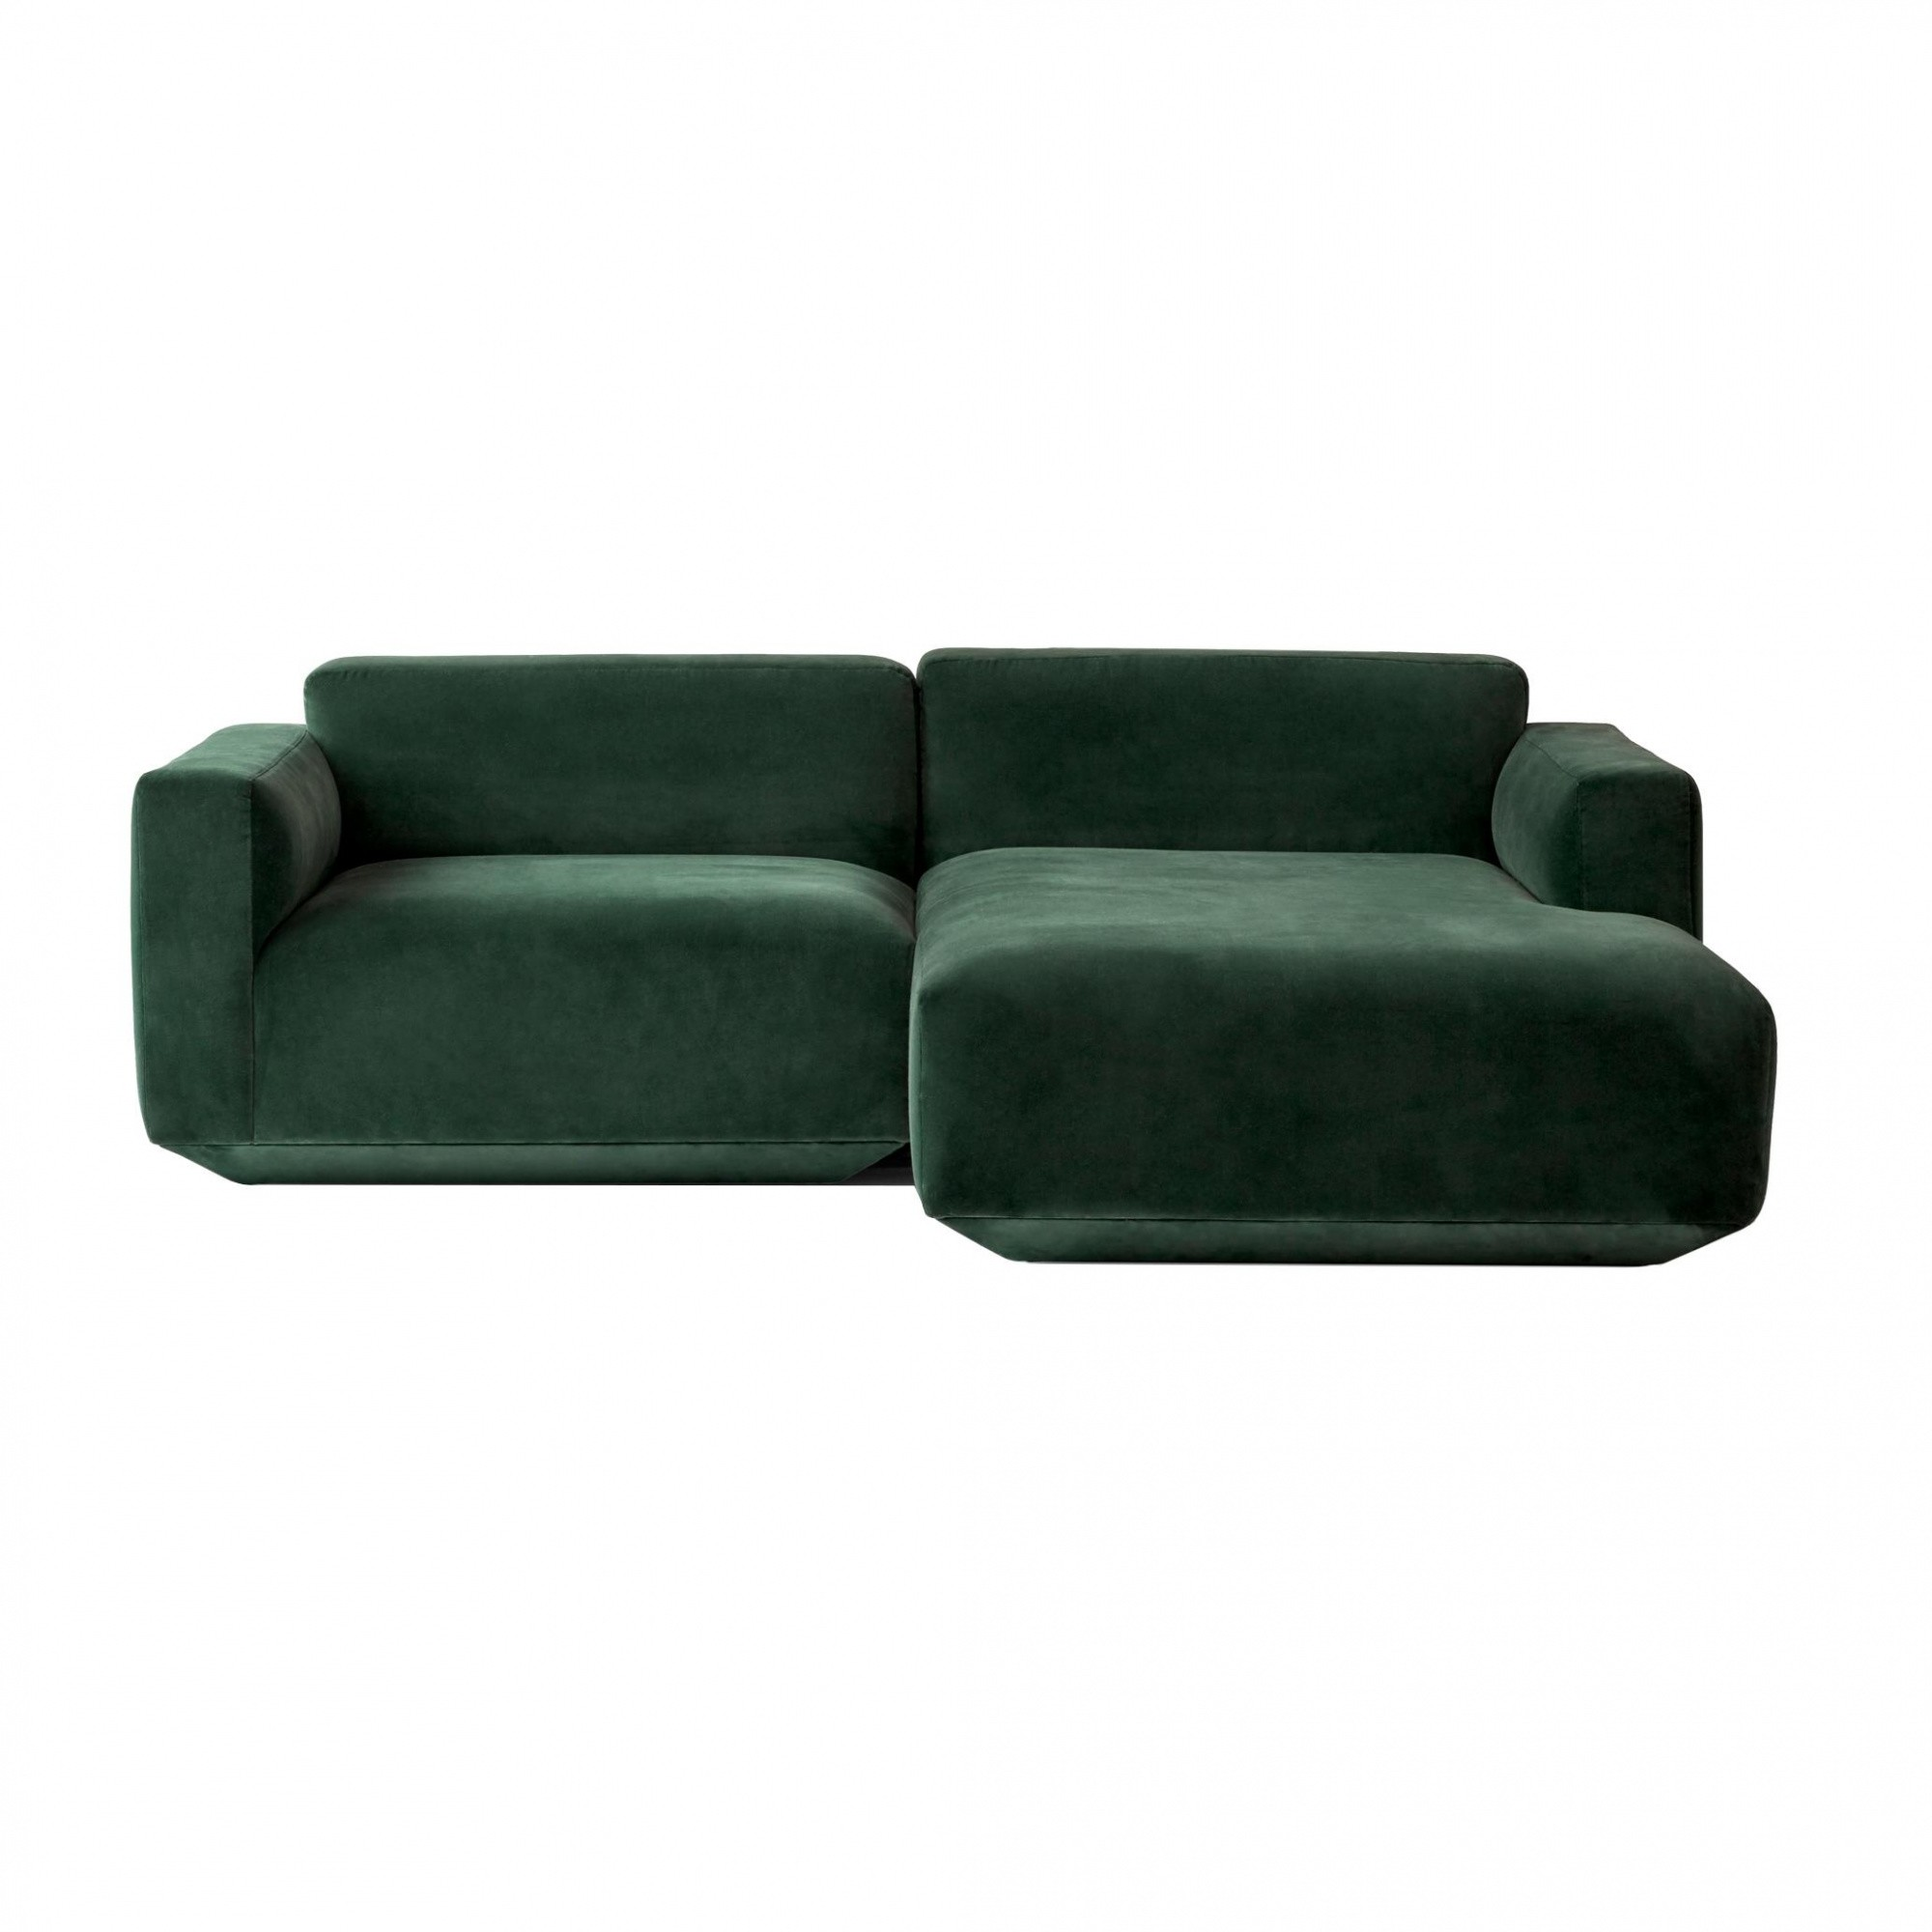 &Tradition Develius 2-Seater Sofa with Chaise Longue | AmbienteDirect